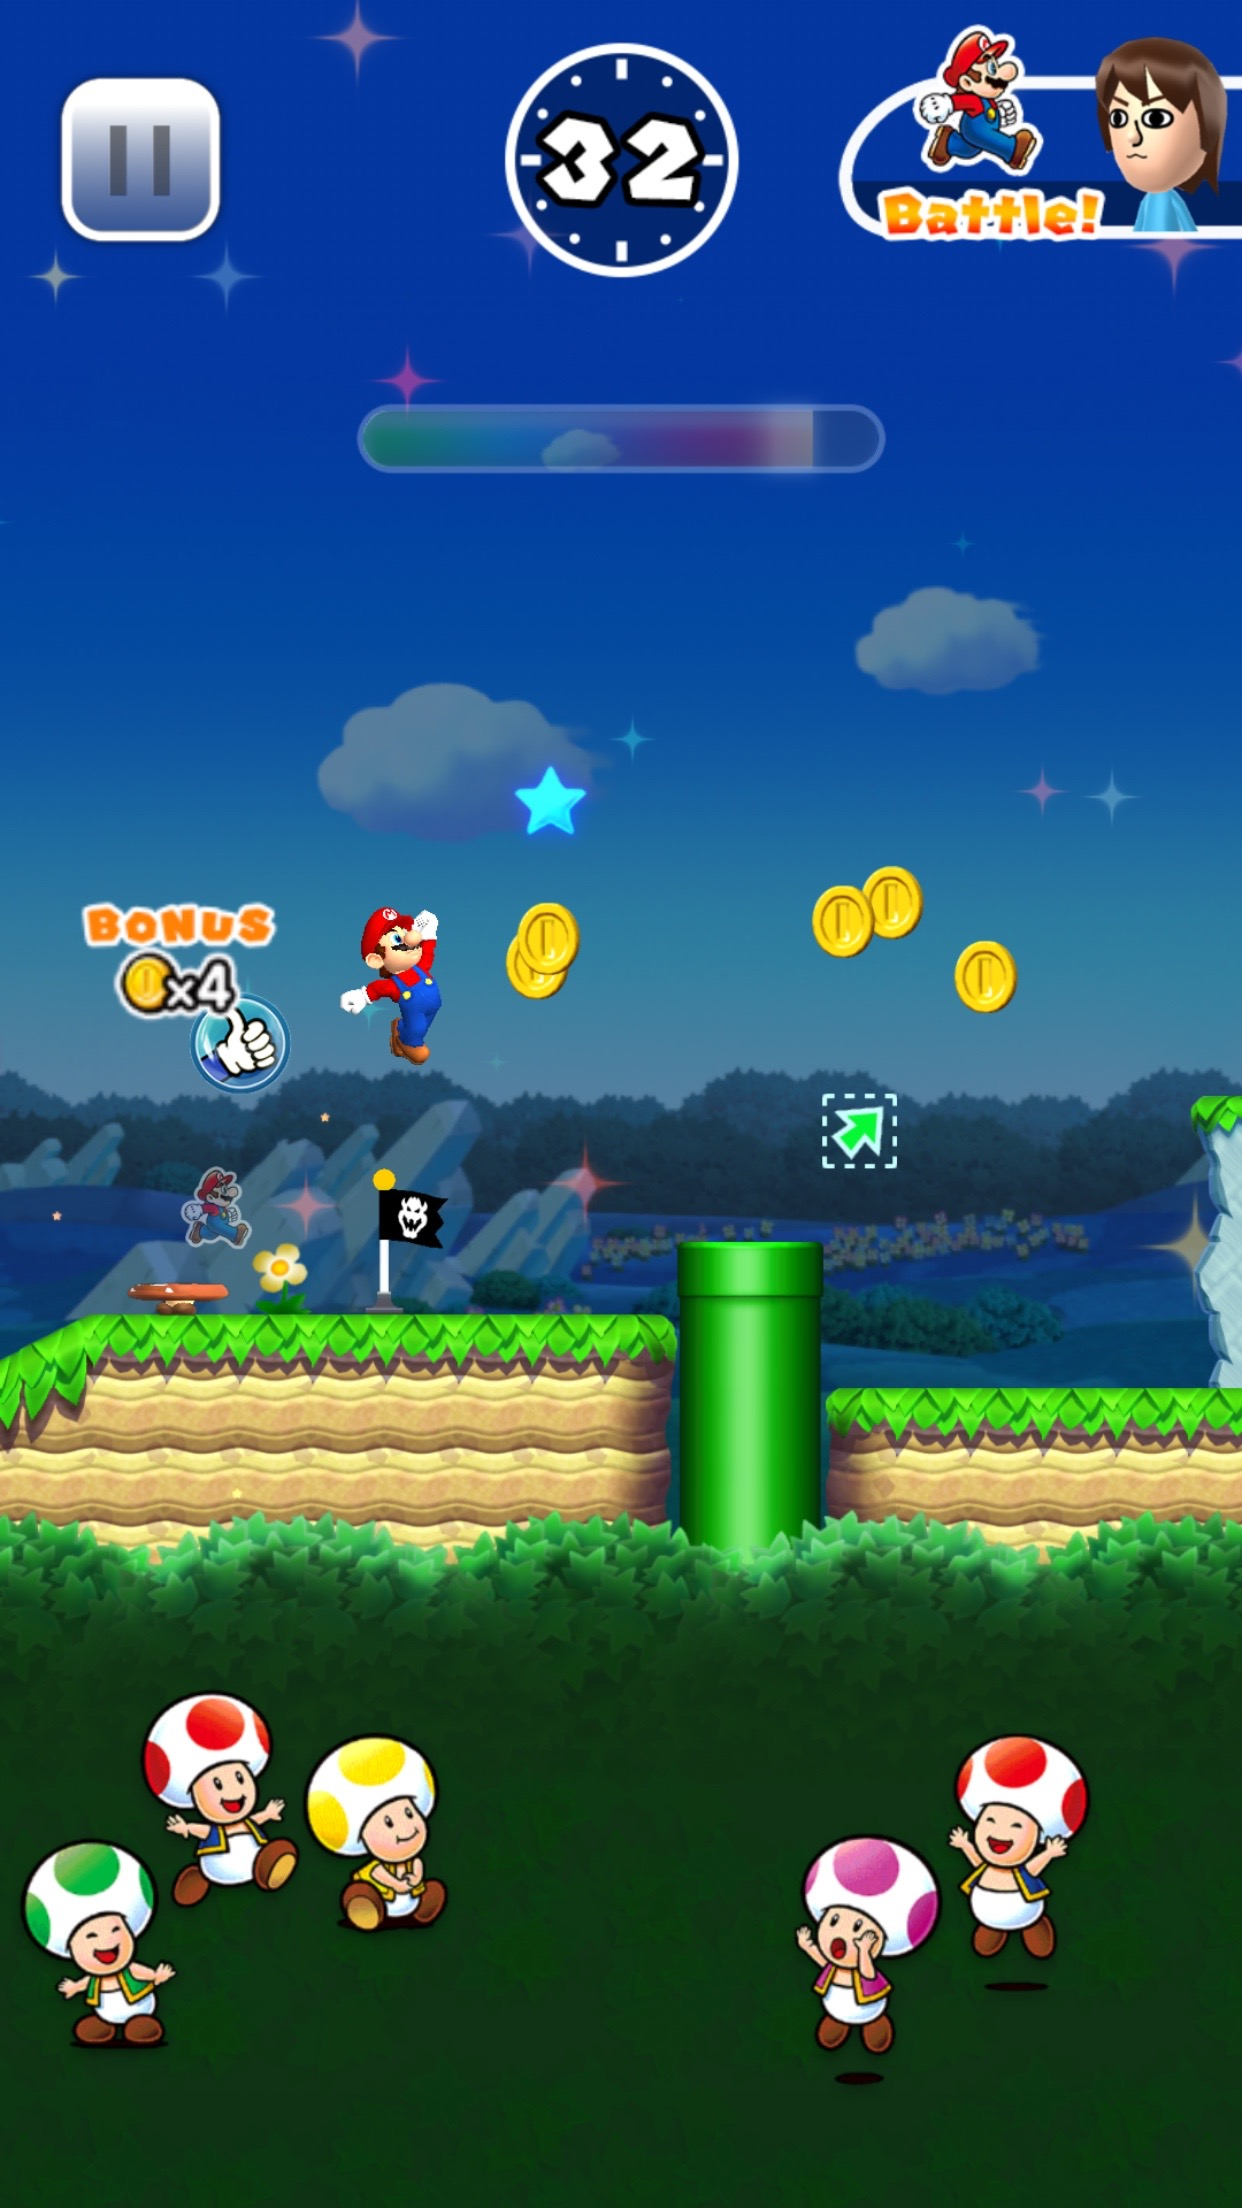 http://rozup.ir/view/1820981/Mobile_SuperMarioRun_iPhone6Plus_screenshot-only_05.jpg